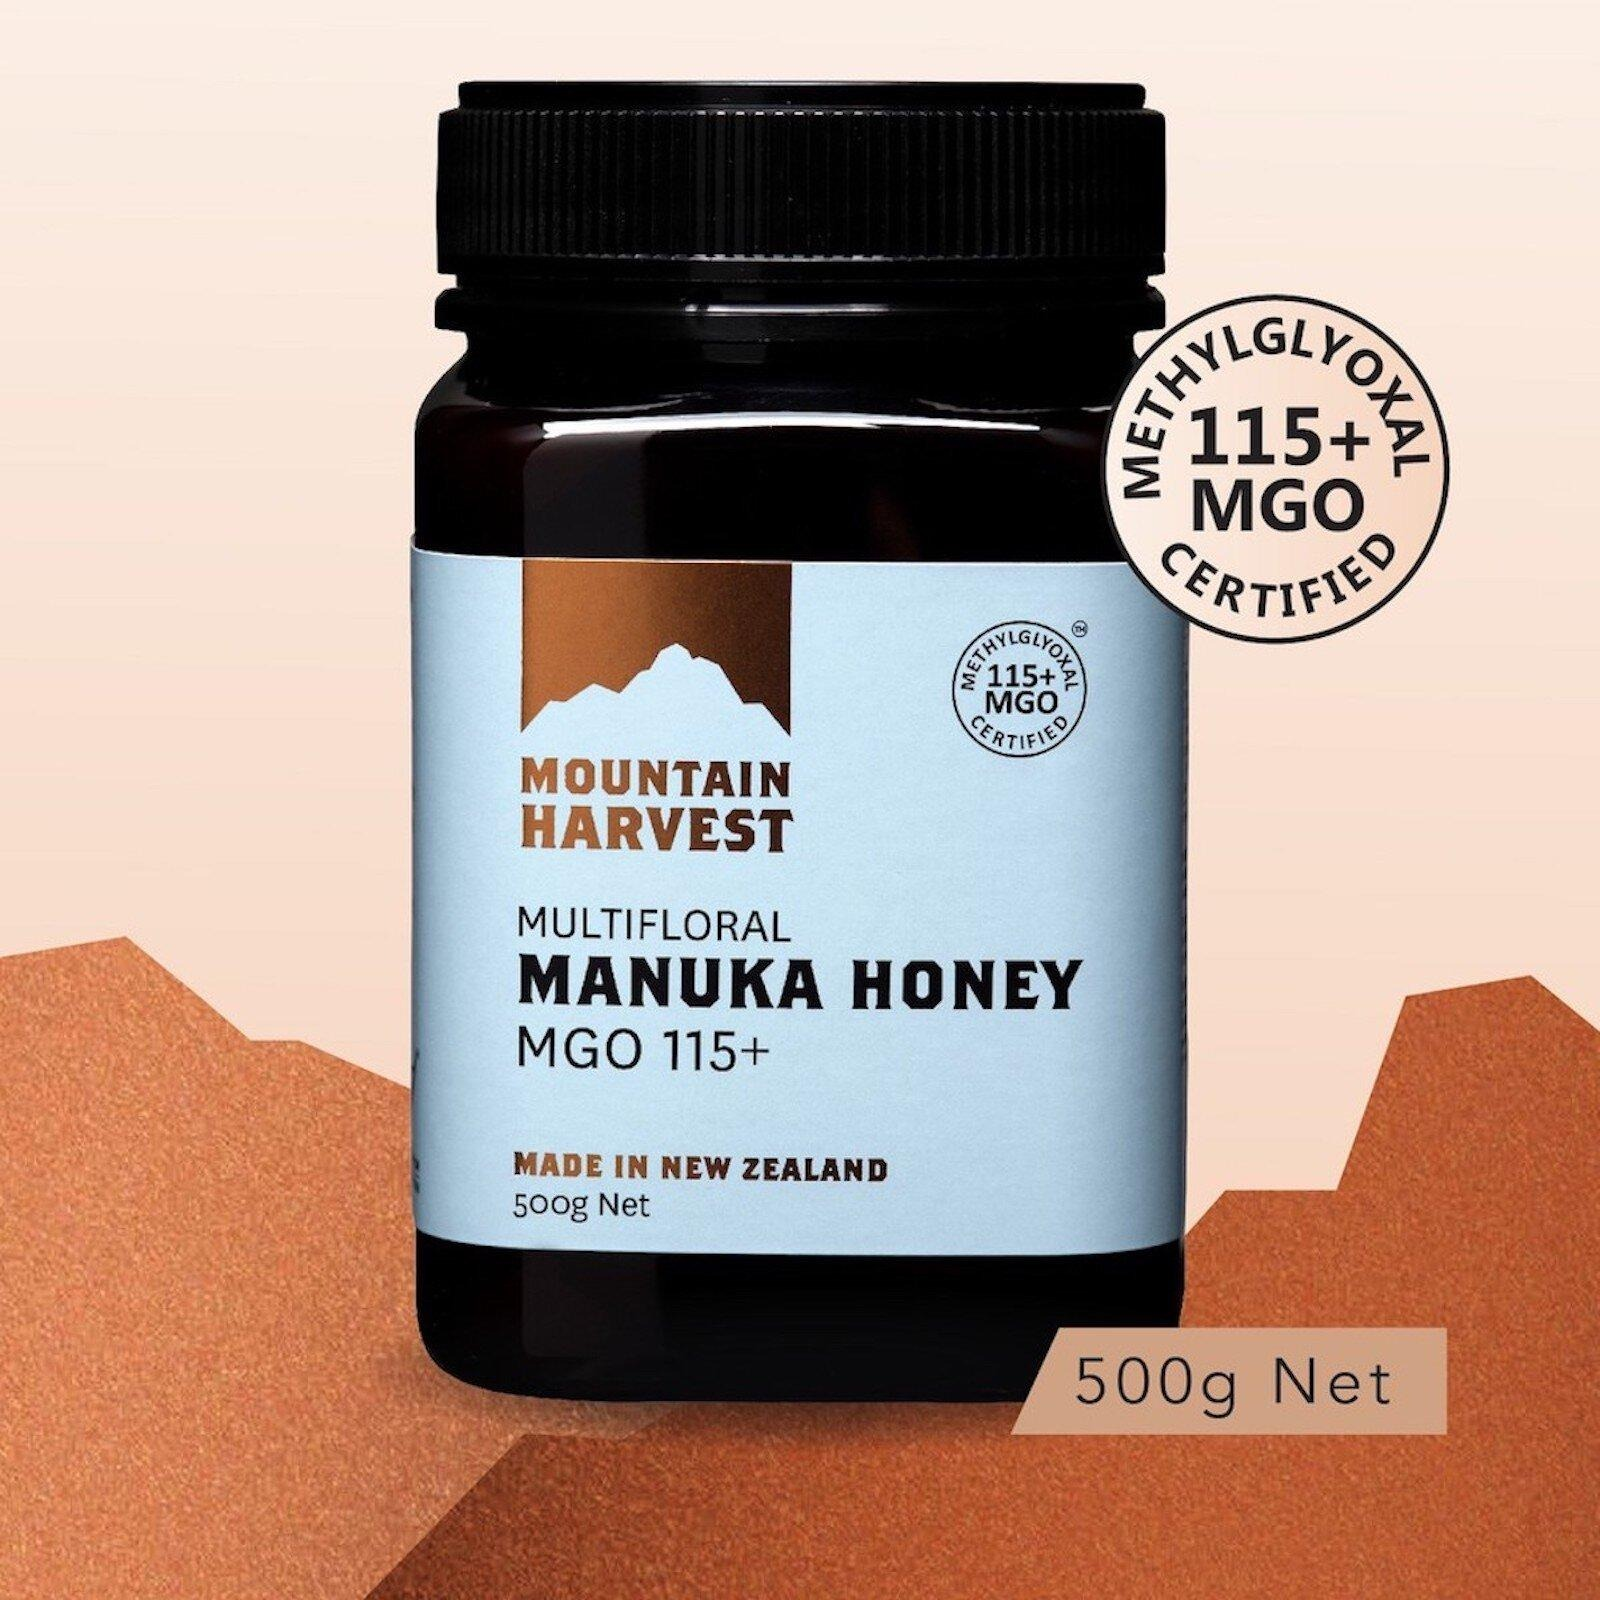 Mountain Harvest Manuka Honey MGO 115+